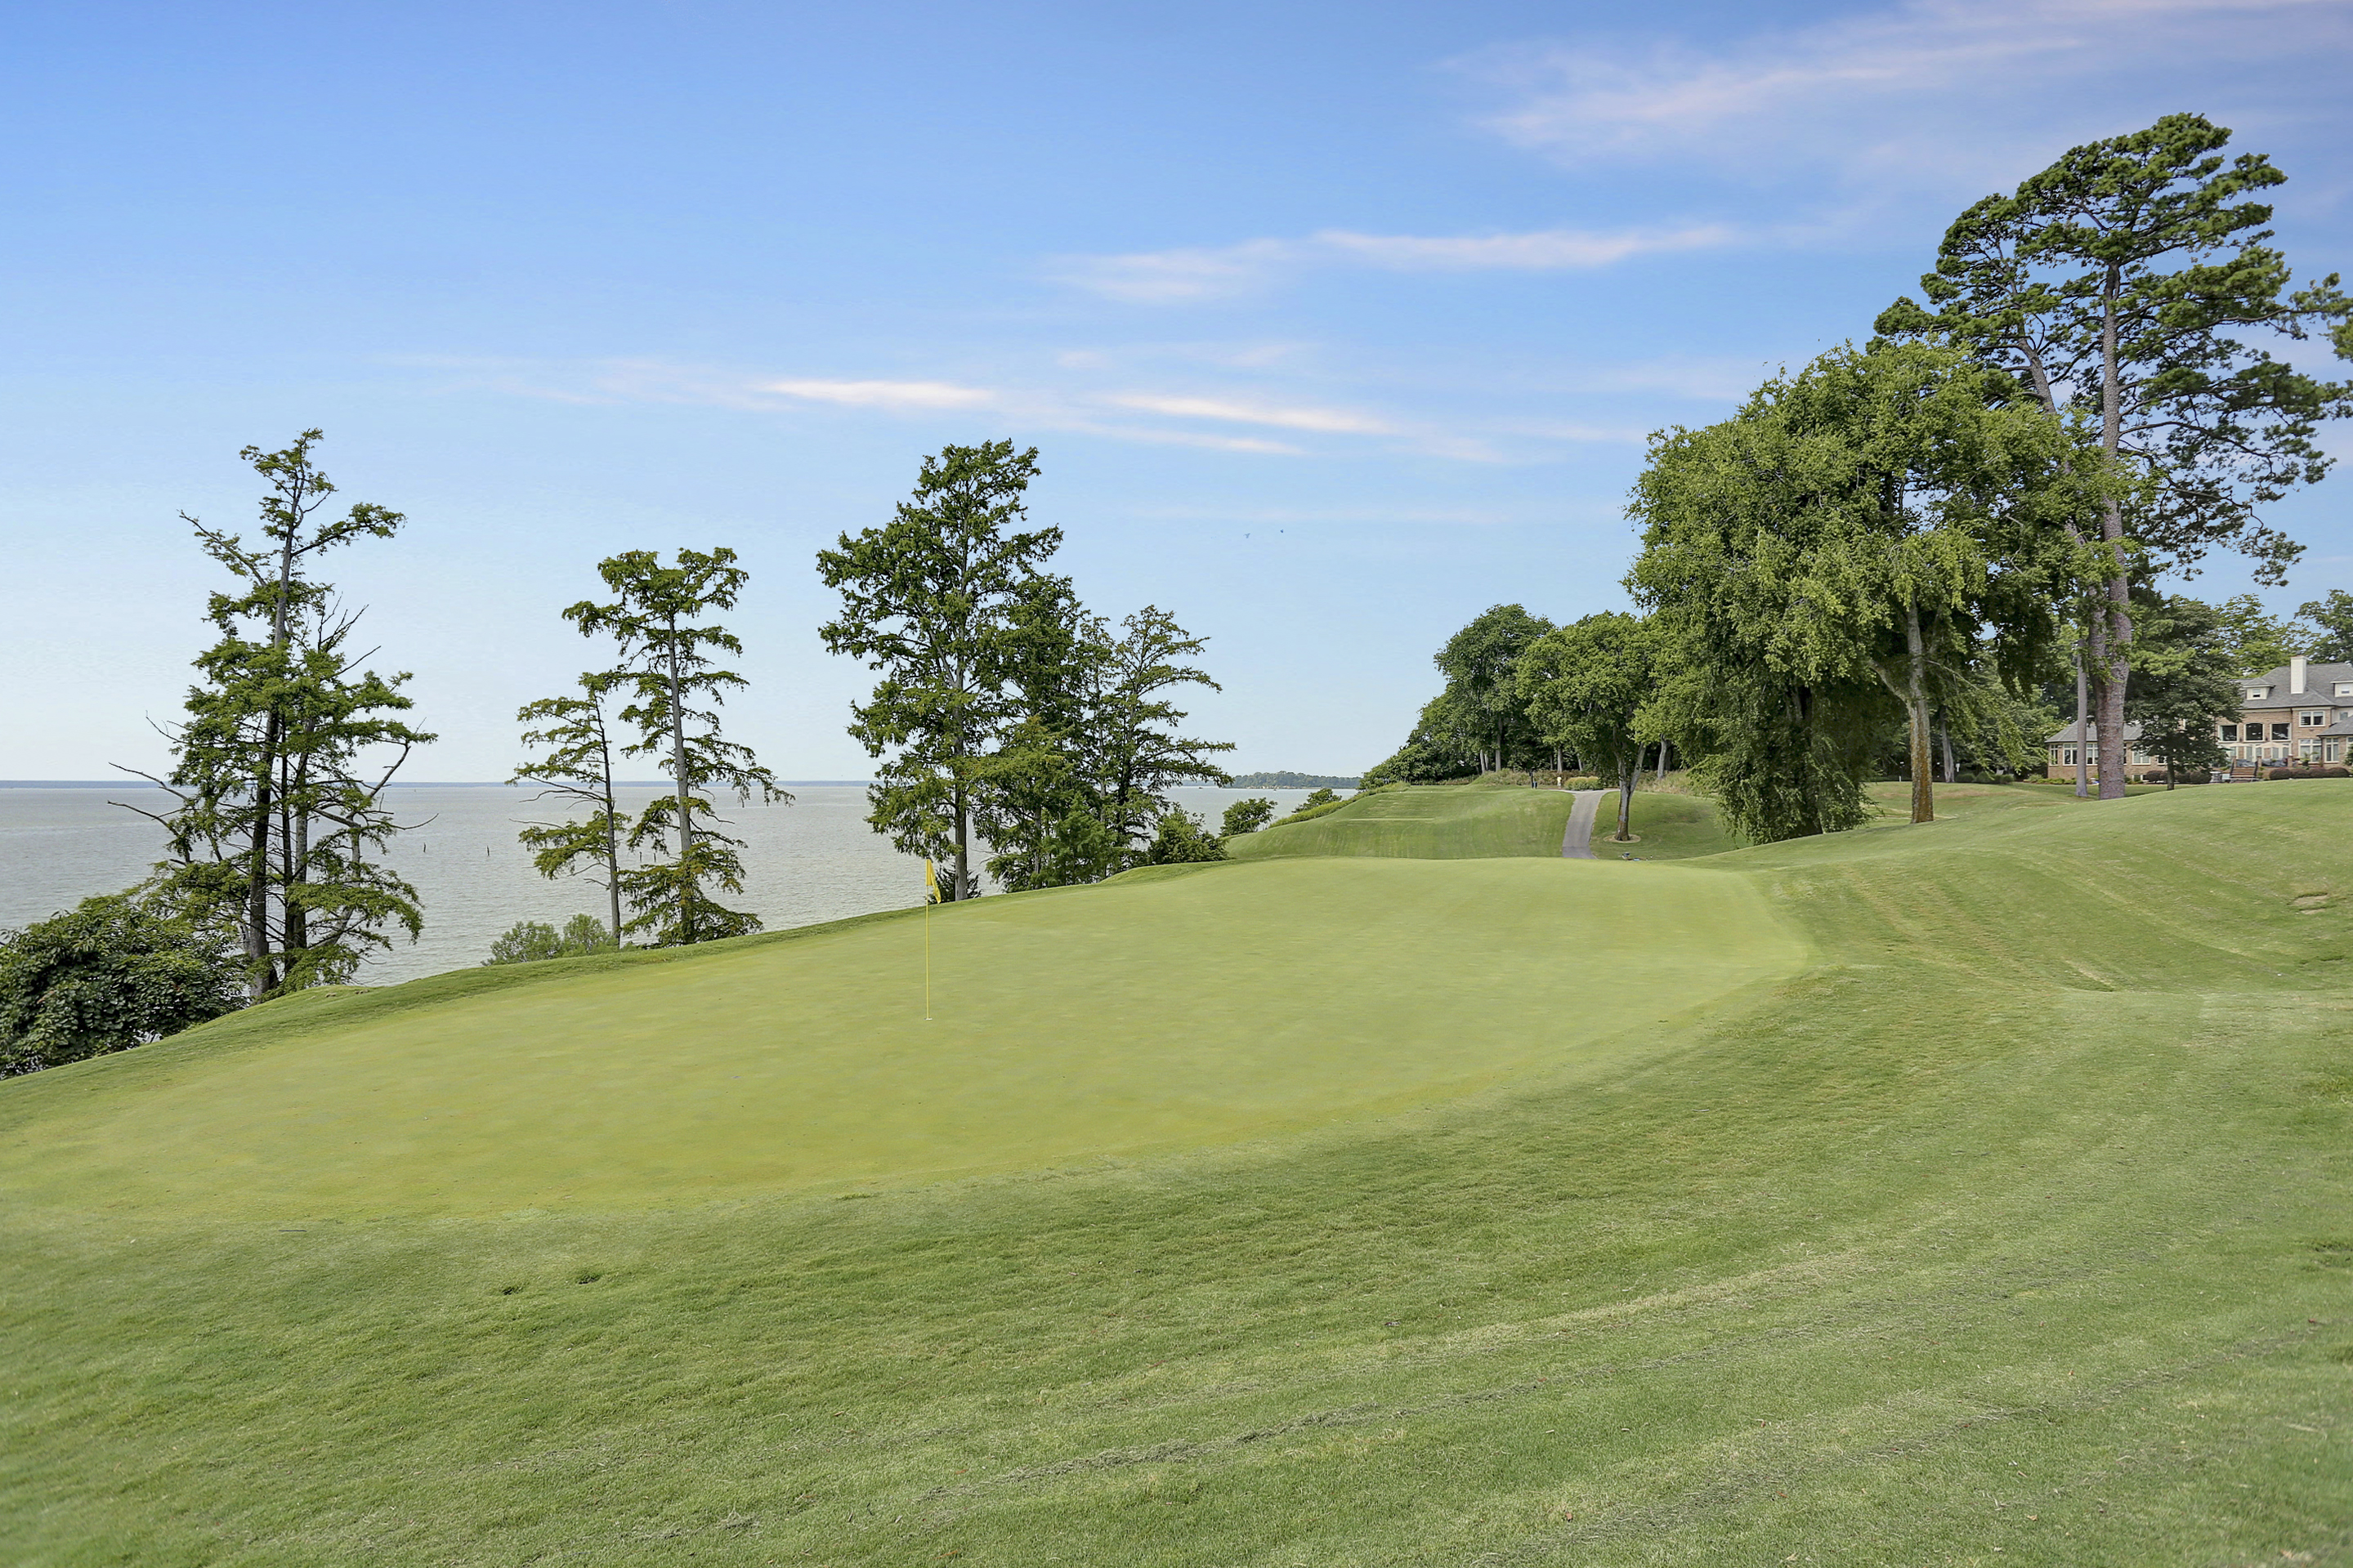 No. 17 River Course